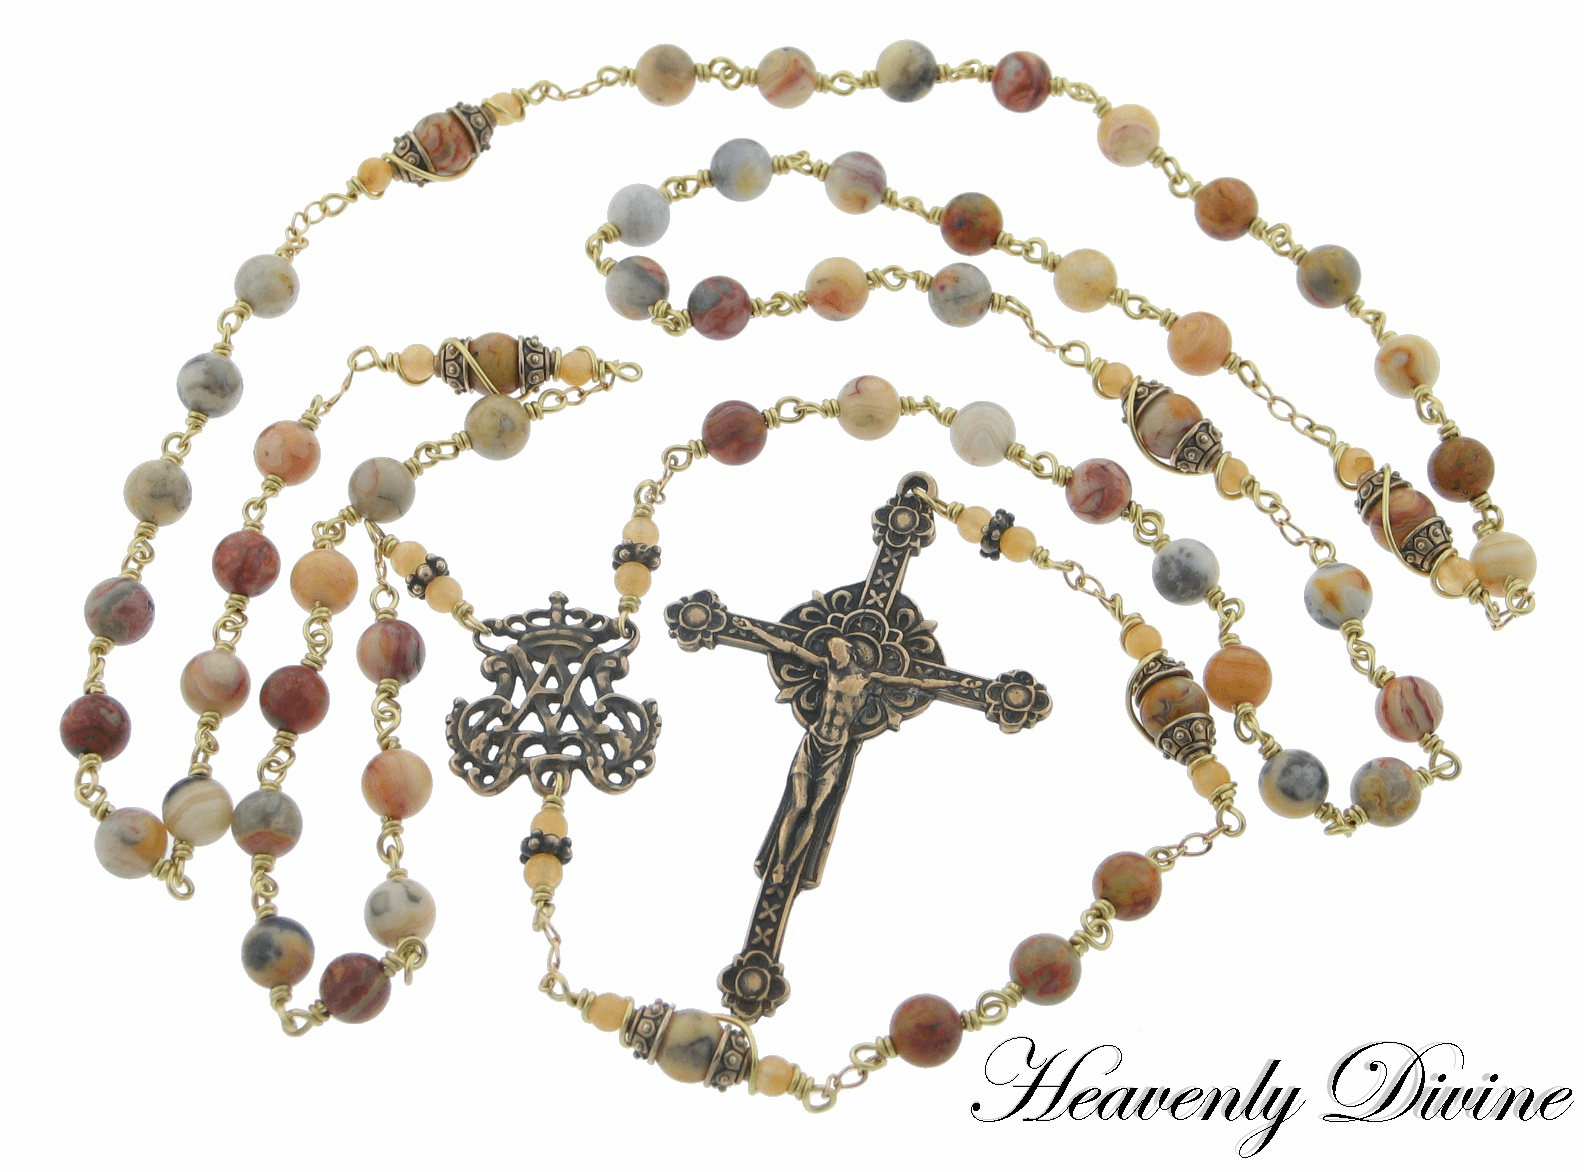 Heavenly Divine Bronze & Gold-filled Five-Decade Rosaries